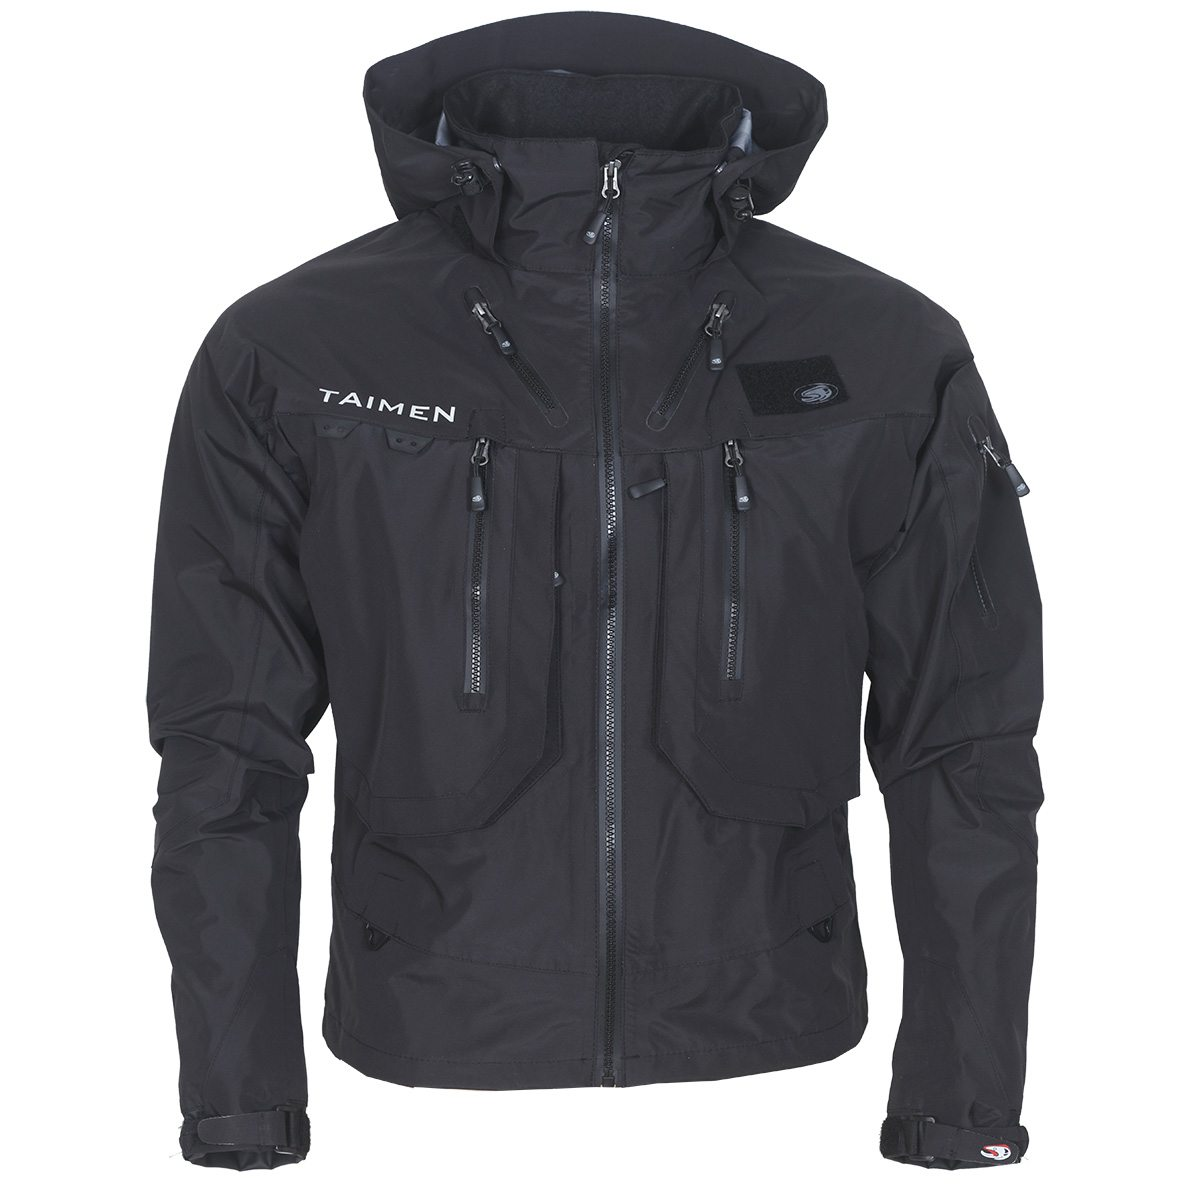 Taimen Kolyma Wading Jacket - Pirate Black